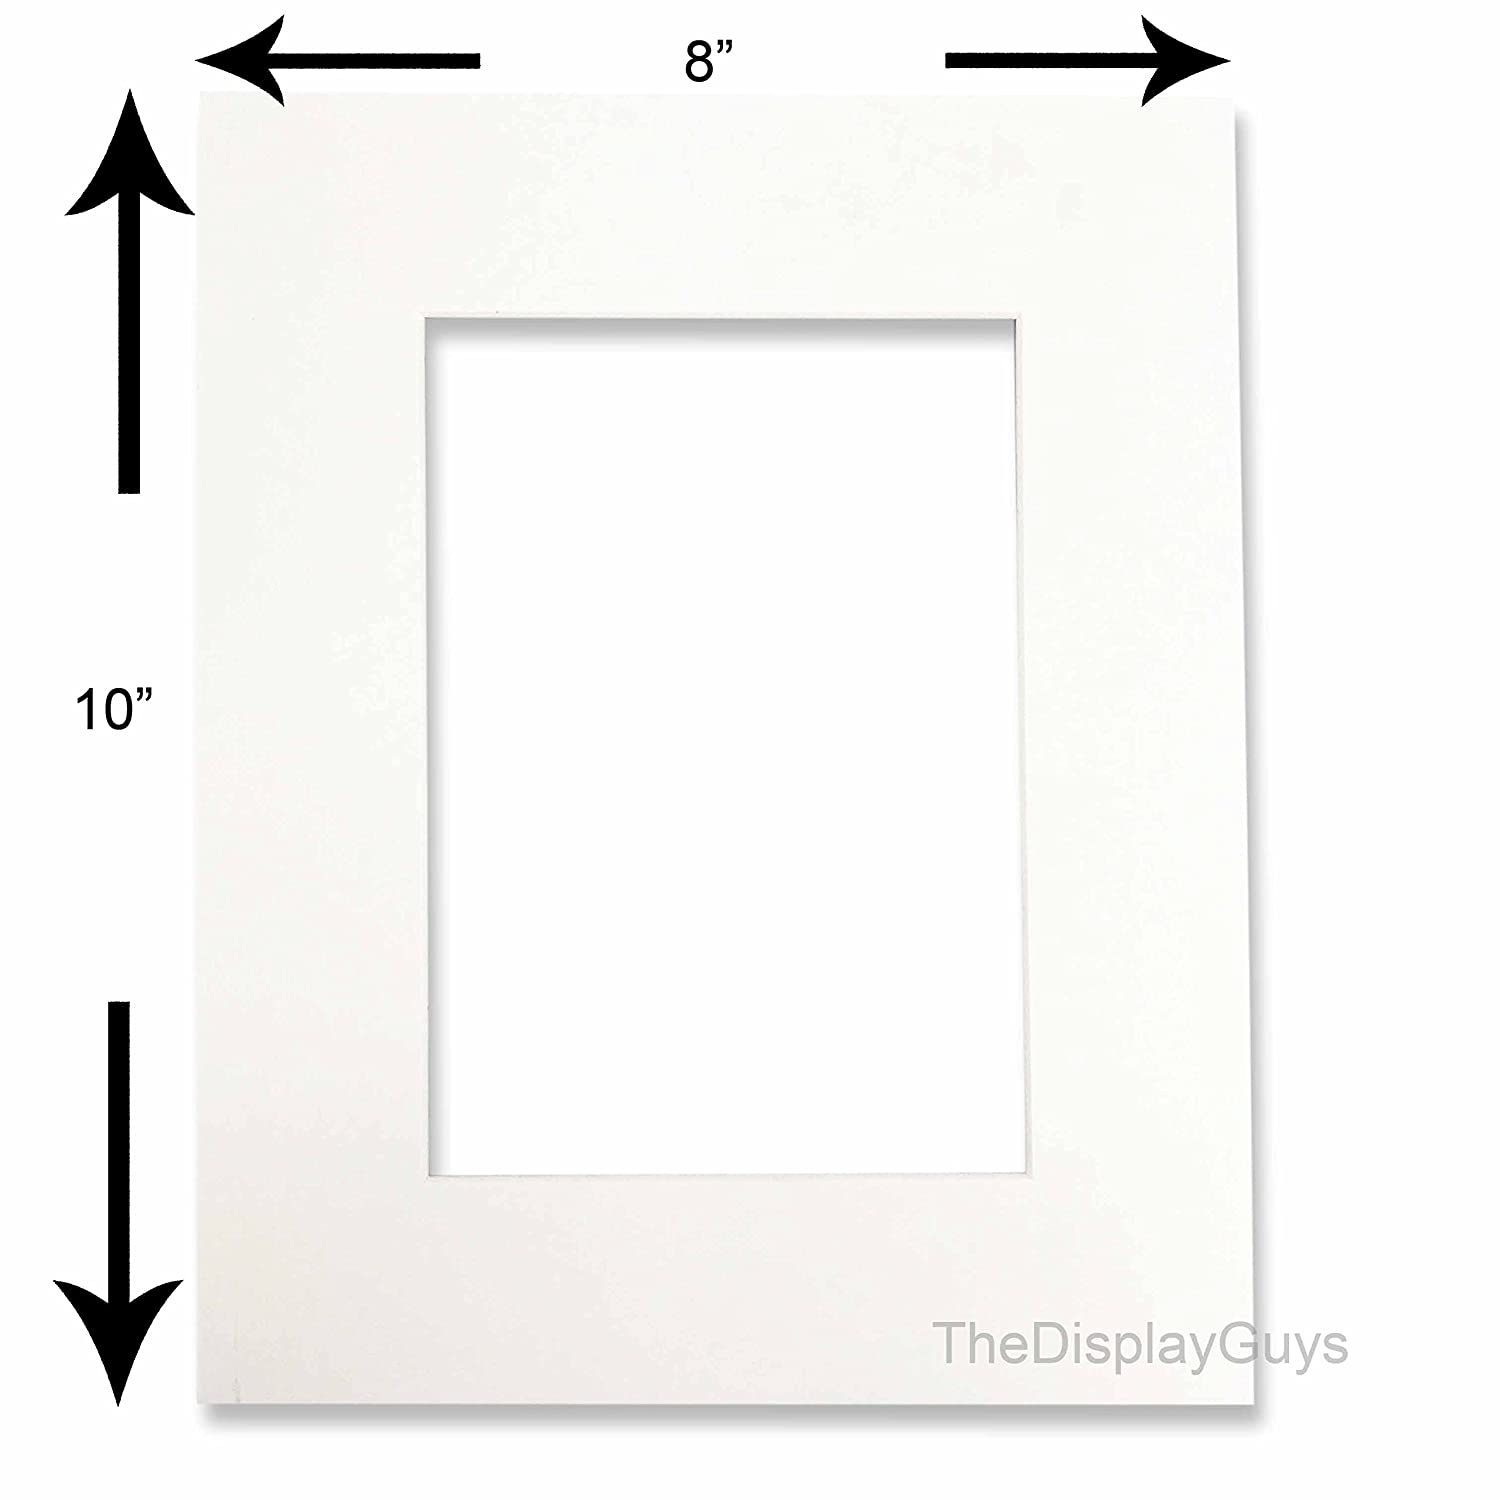 50pcs Back Board only The Display Guys 50pcs 8x10 inch Photo Picture Mat Board Backing Boards for Framing